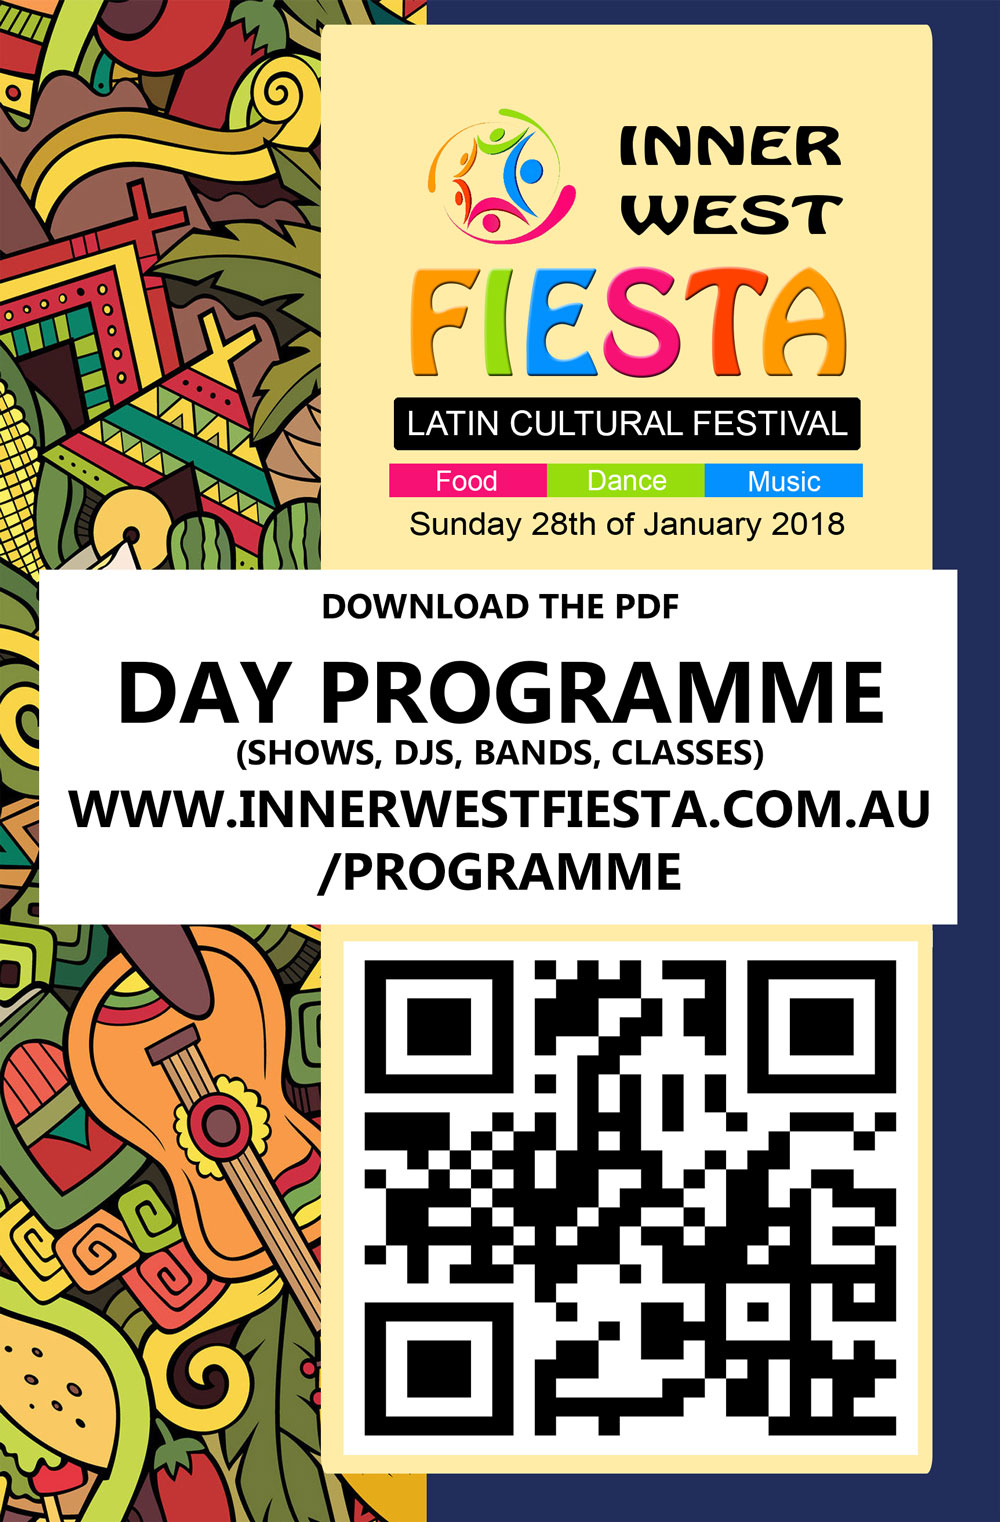 Emaill fiesta latina download